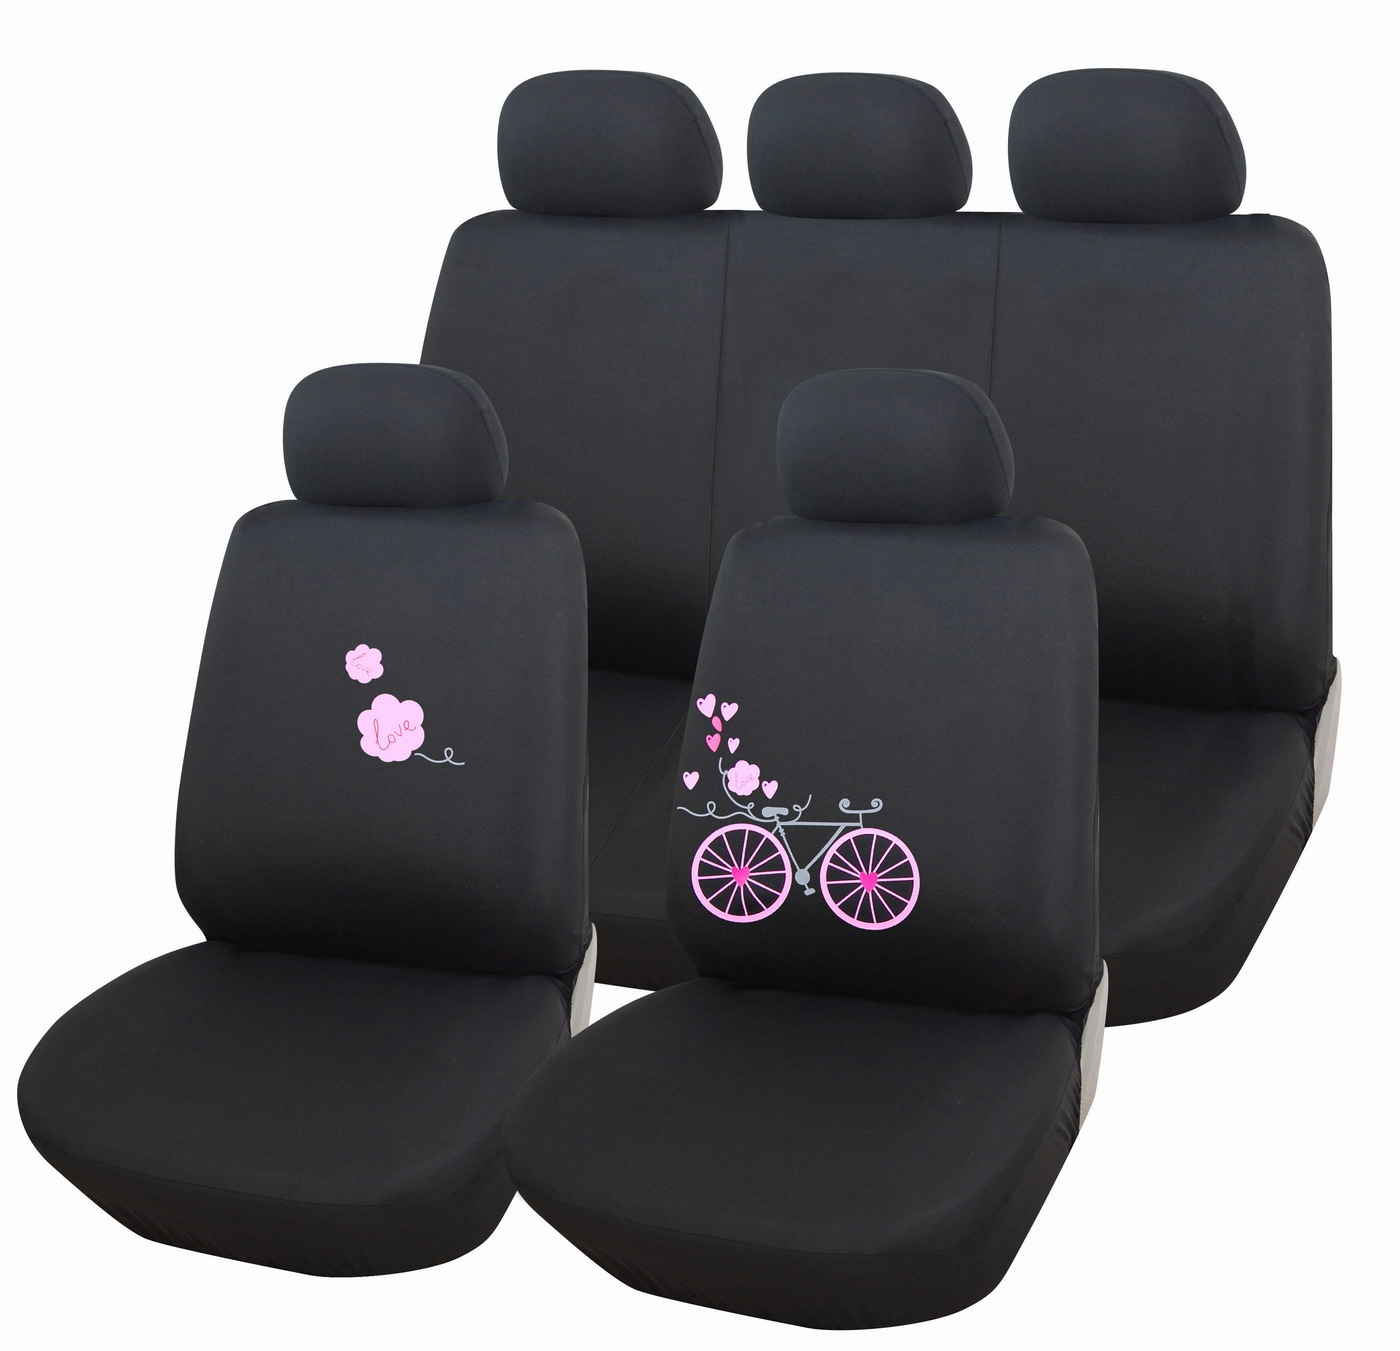 2017 new washable polyester car seat cover for sale buy washable polyester car seat cover. Black Bedroom Furniture Sets. Home Design Ideas